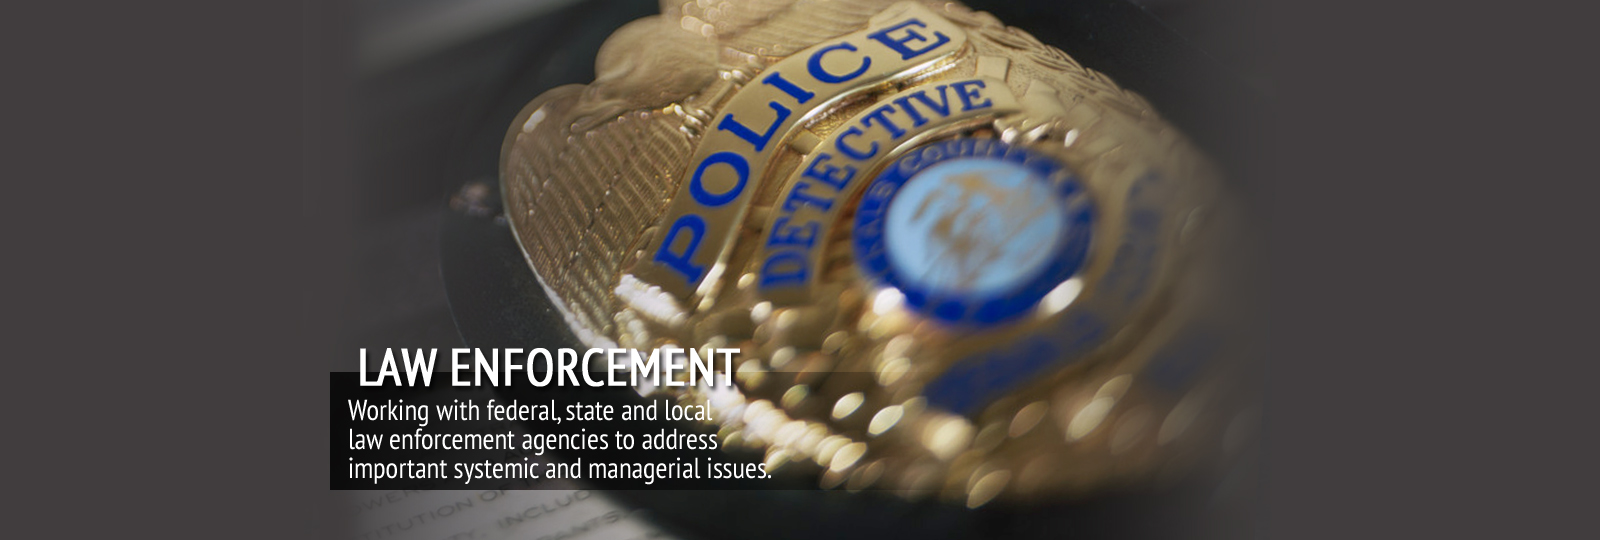 Slide 6 – Law Enforcement